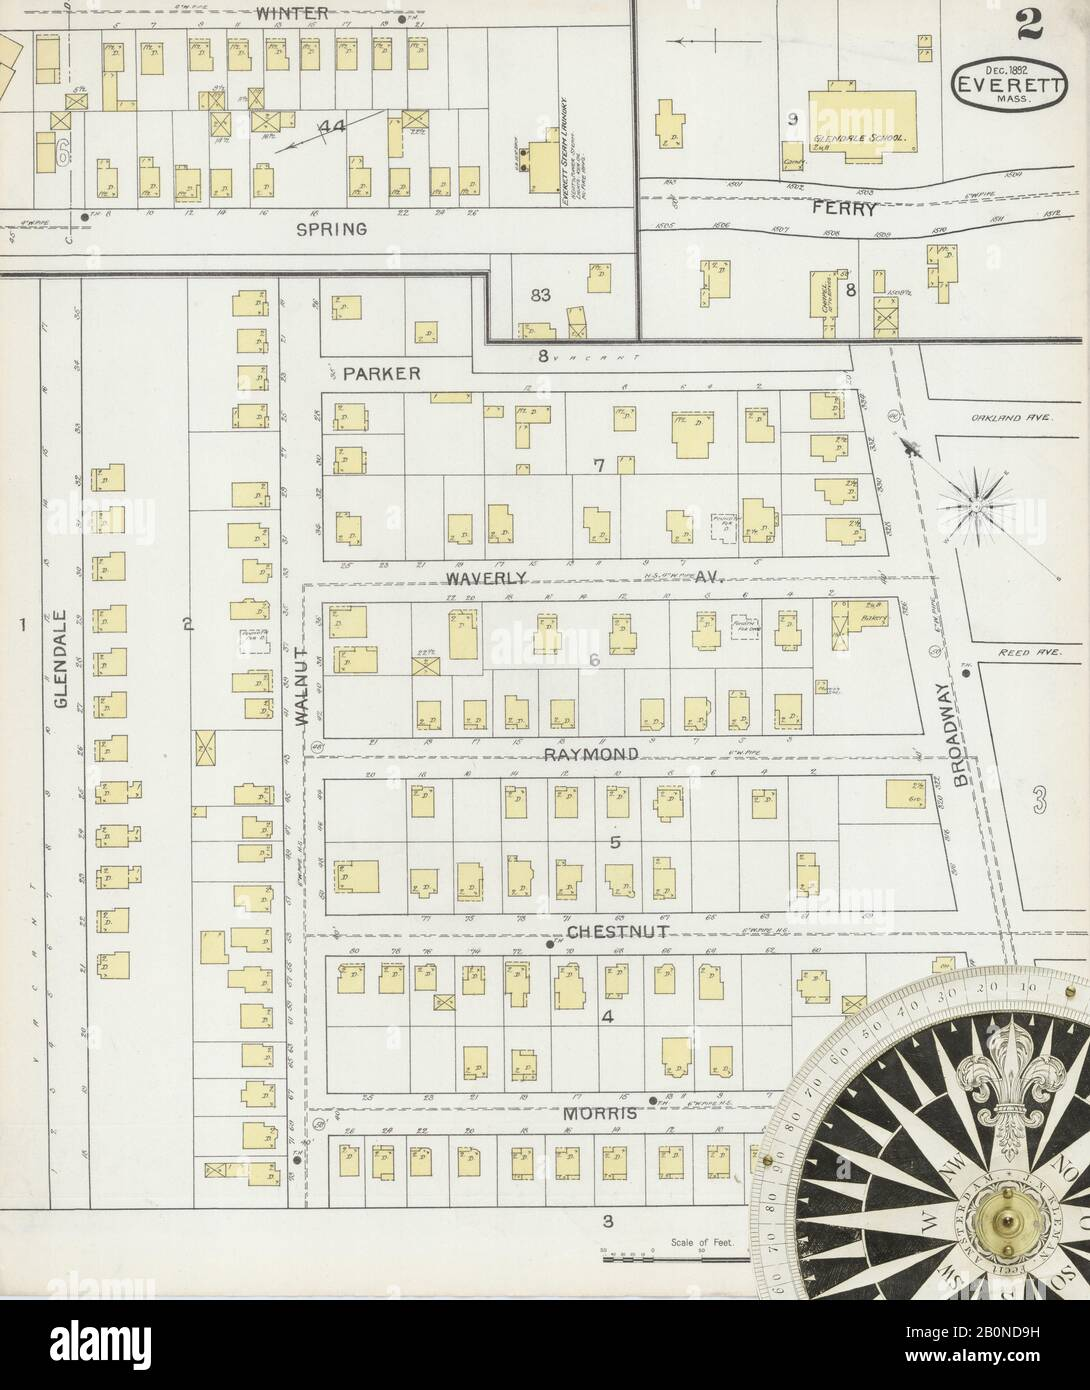 Image 2 of Sanborn Fire Insurance Map from Everett, Middlesex County, Massachusetts. Dec 1892. 16 Sheet(s), America, street map with a Nineteenth Century compass Stock Photo